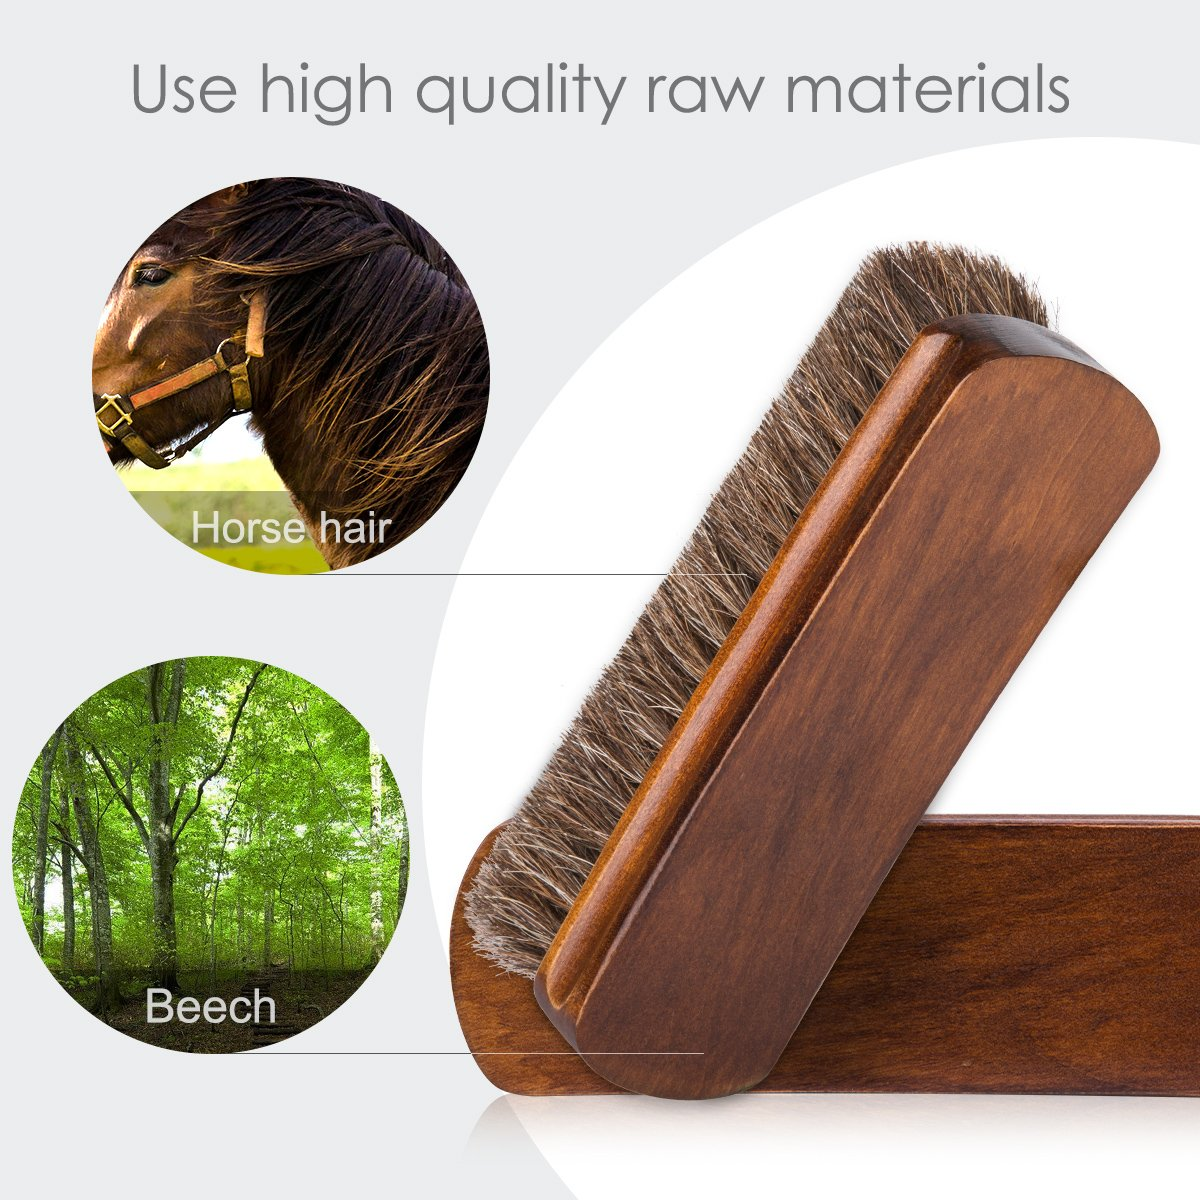 6.7'' Horsehair Shoe Brushes with Horse Hair Bristles for Boots, Shoes & Other Leather Care, 2 Pack (Brown) by Foloda (Image #4)